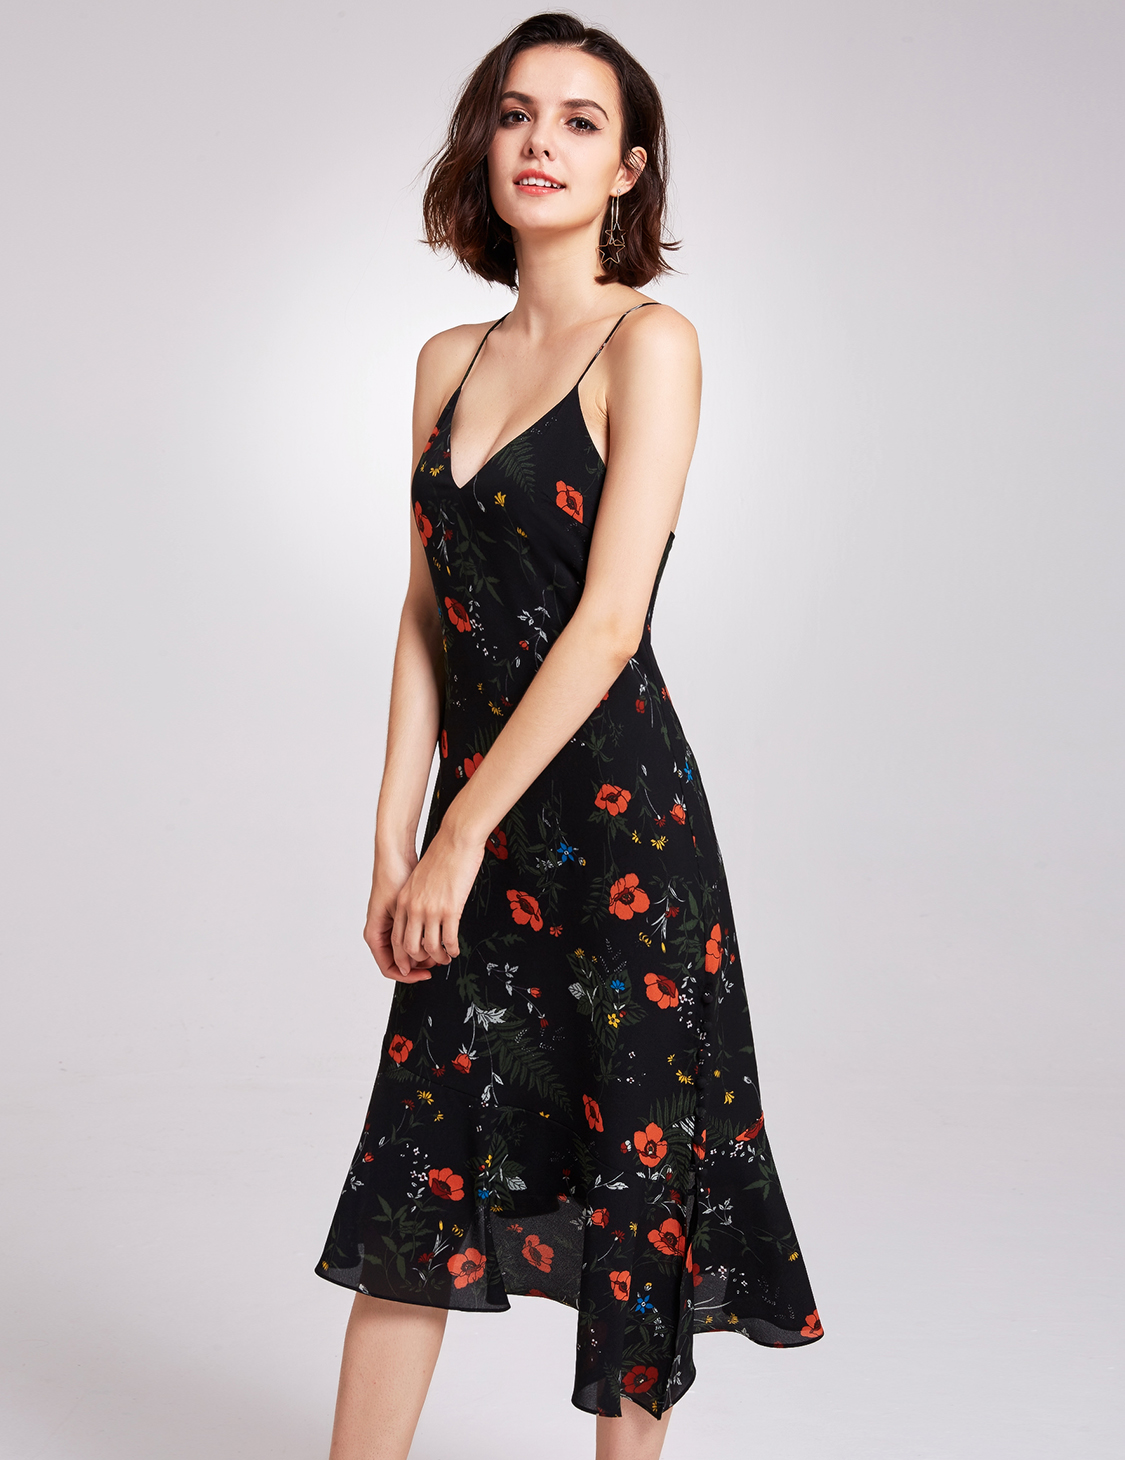 Alisa Pan Short Cocktail Dresses Sexy V-neck Floral Casual Holiday ...